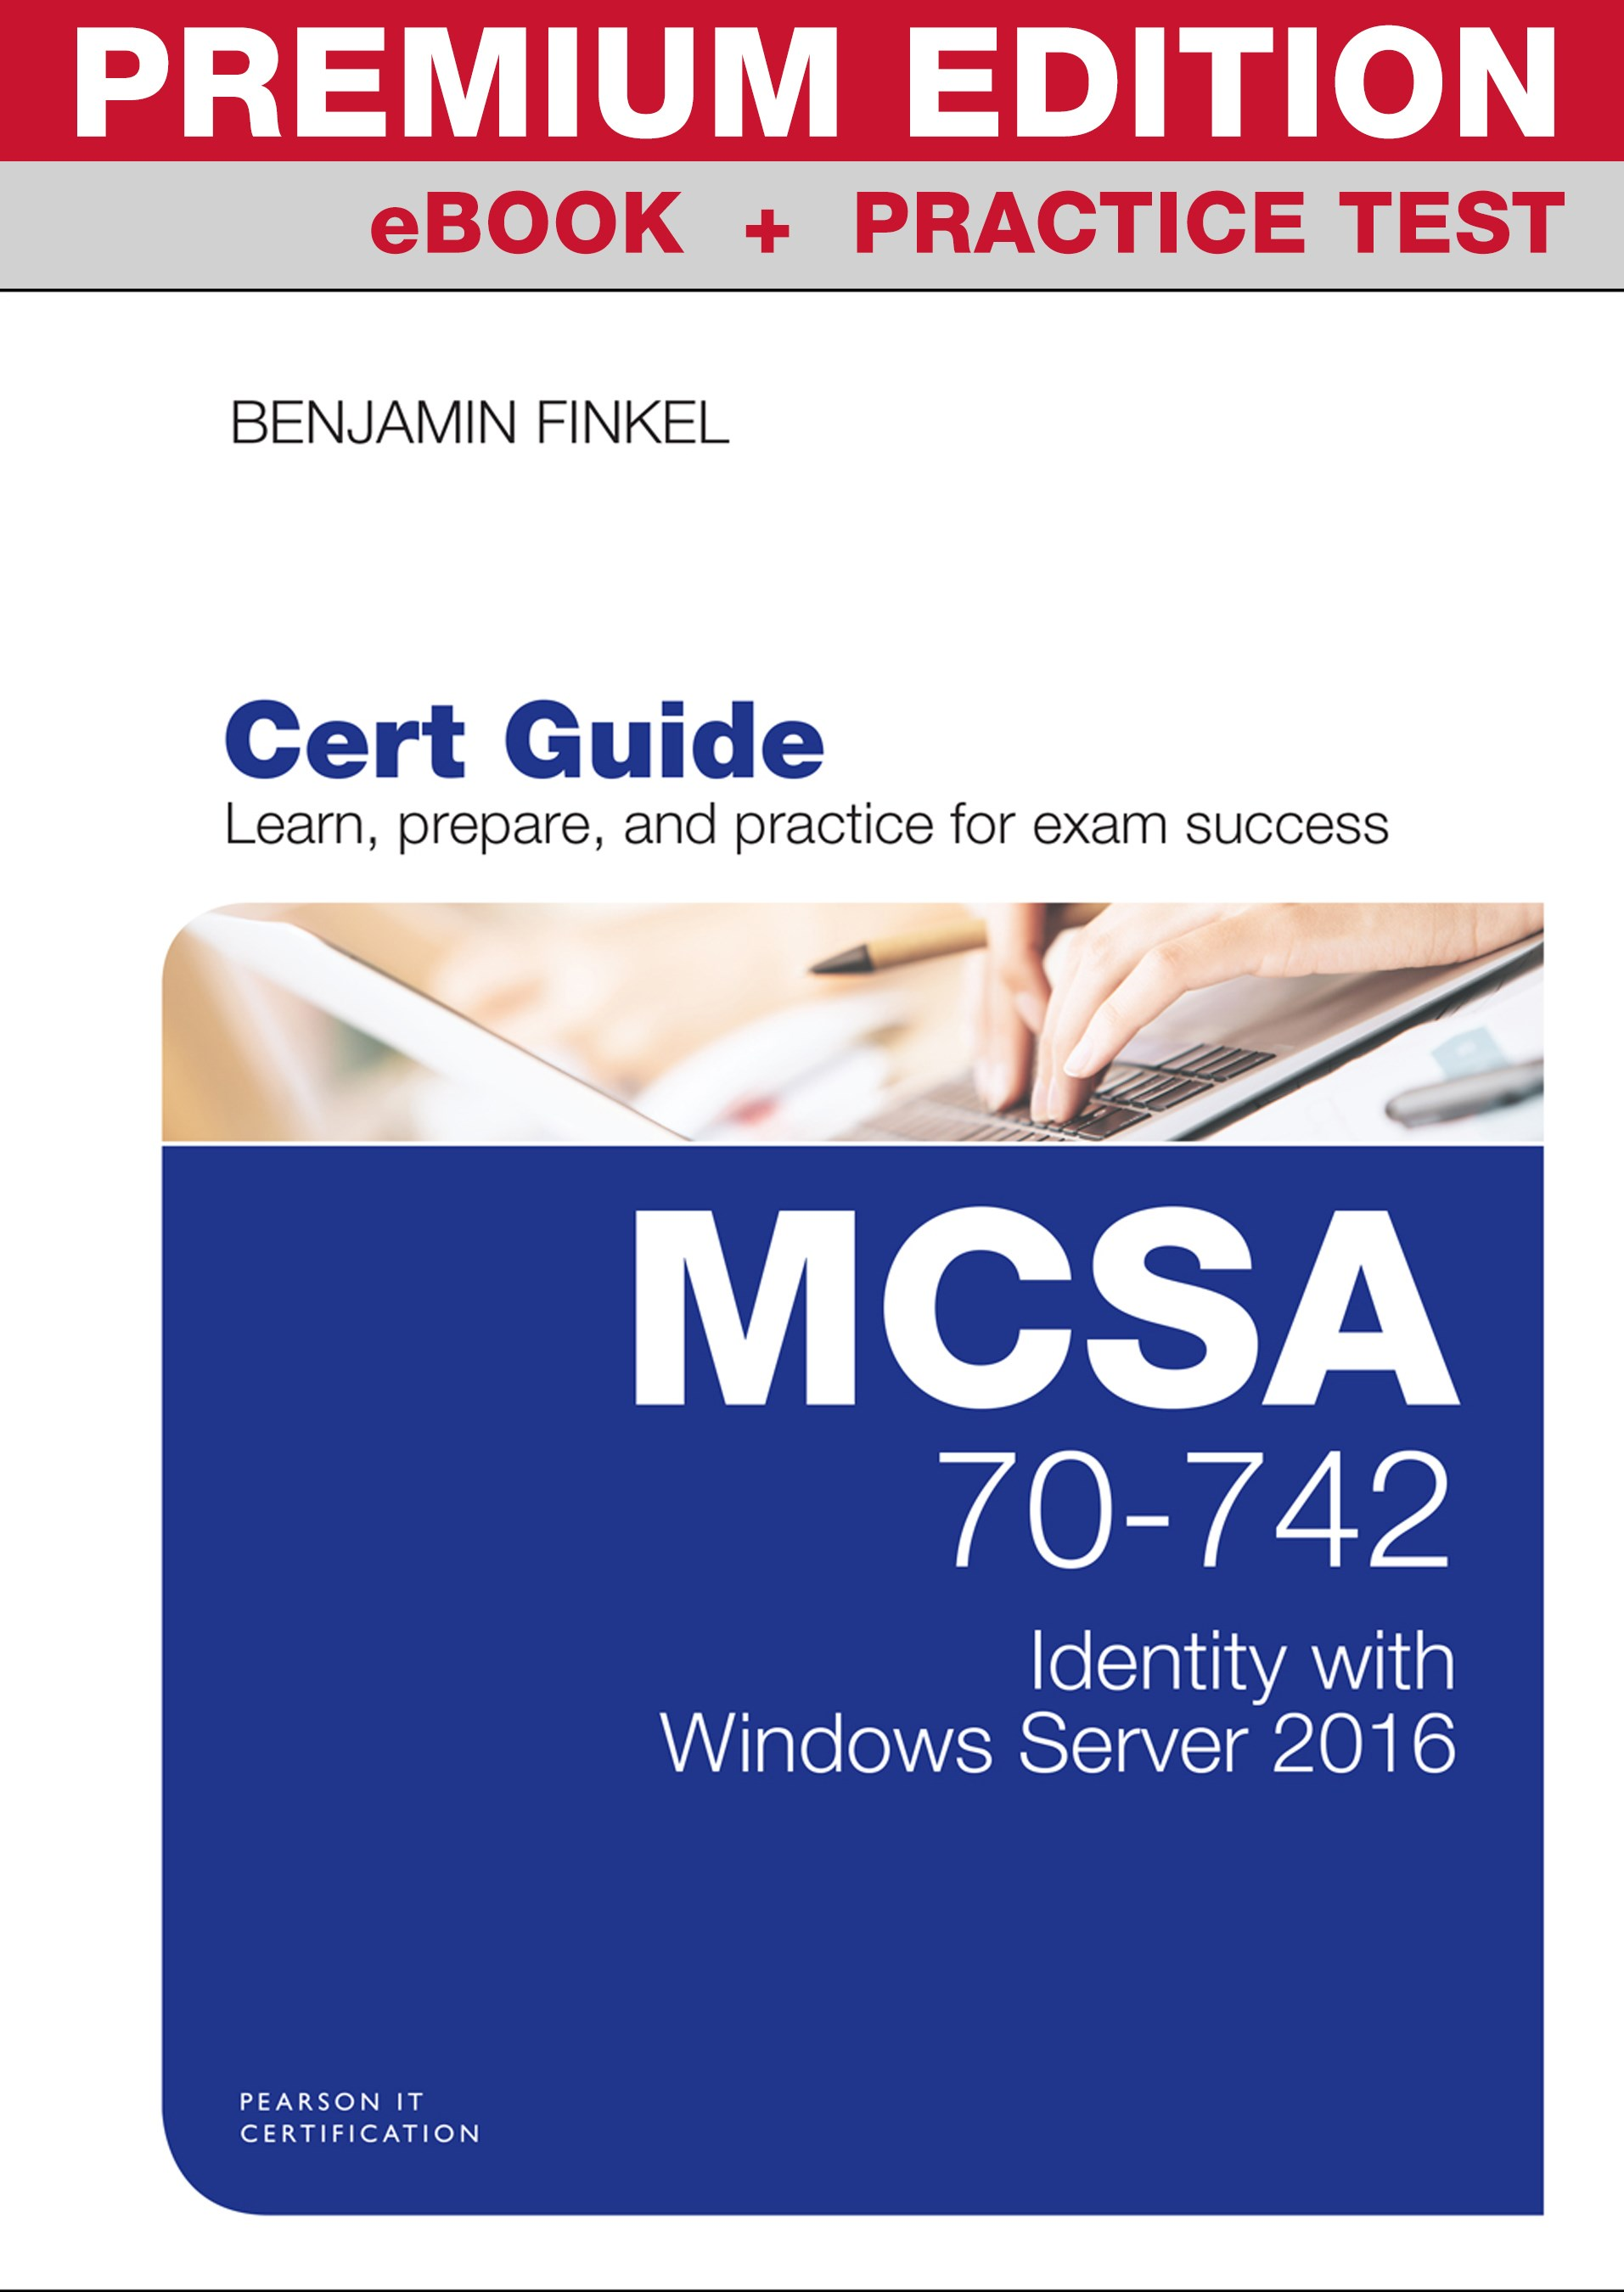 MCSA 70-742 Cert Guide Premium Edition and Practice Tests: Identity with Windows Server 2016